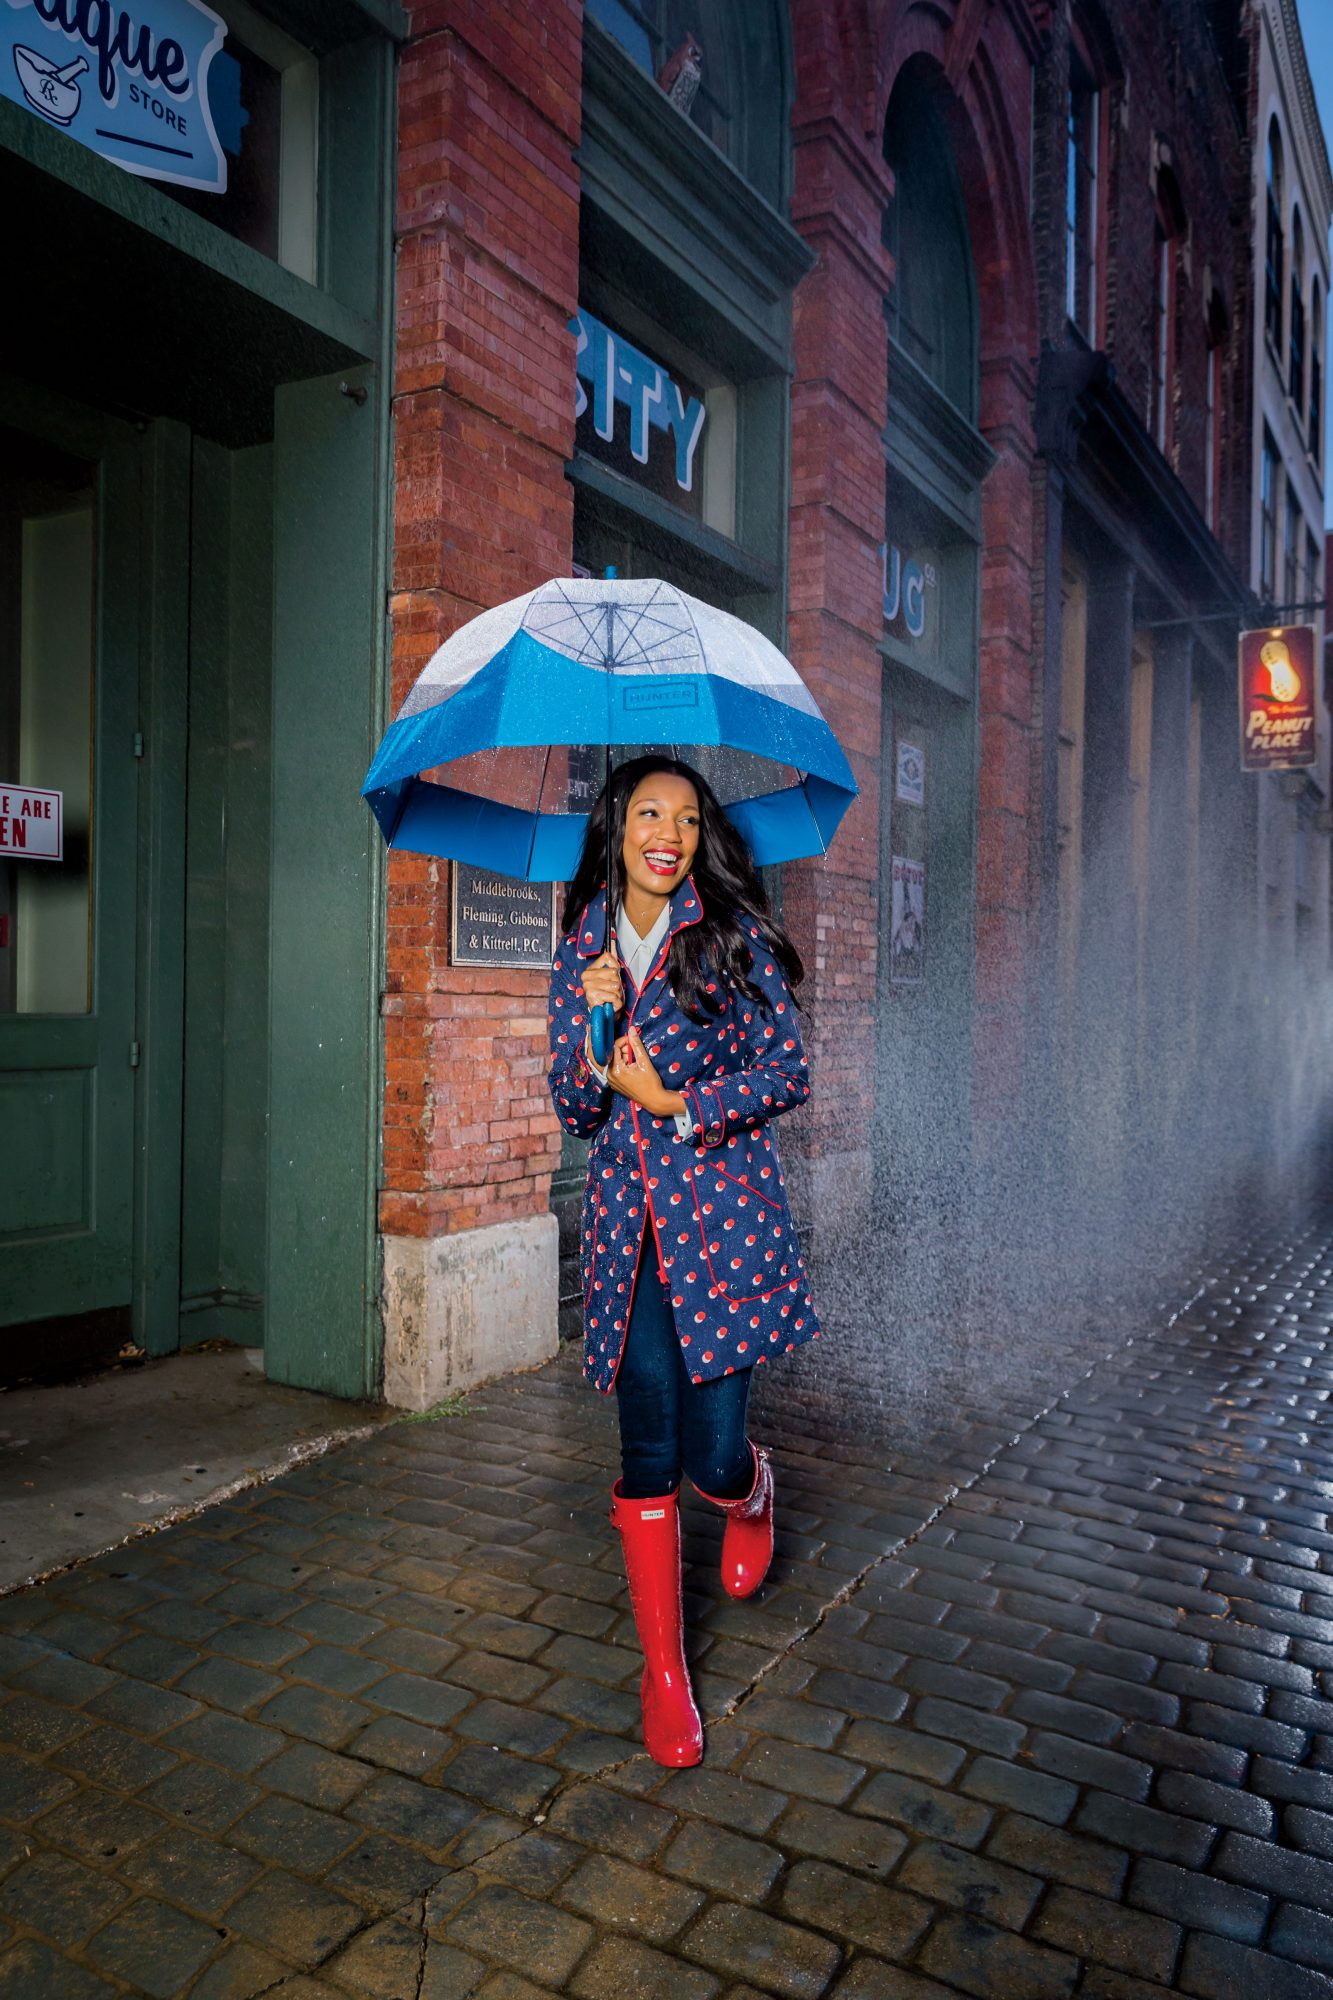 Boden Trench Coat in Navy with Red Polka Dots in the Rain